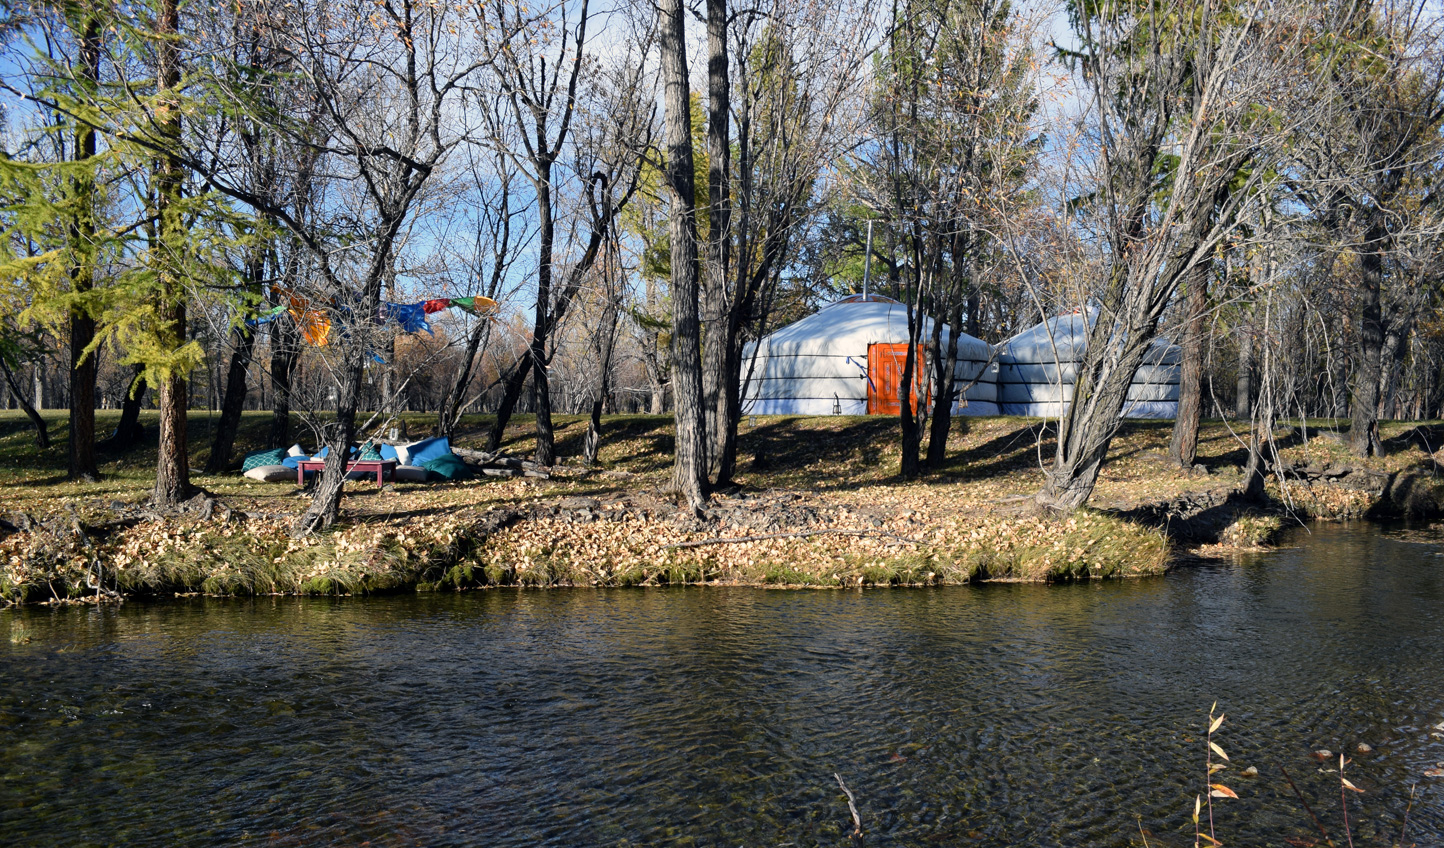 Camp beside the riverbank